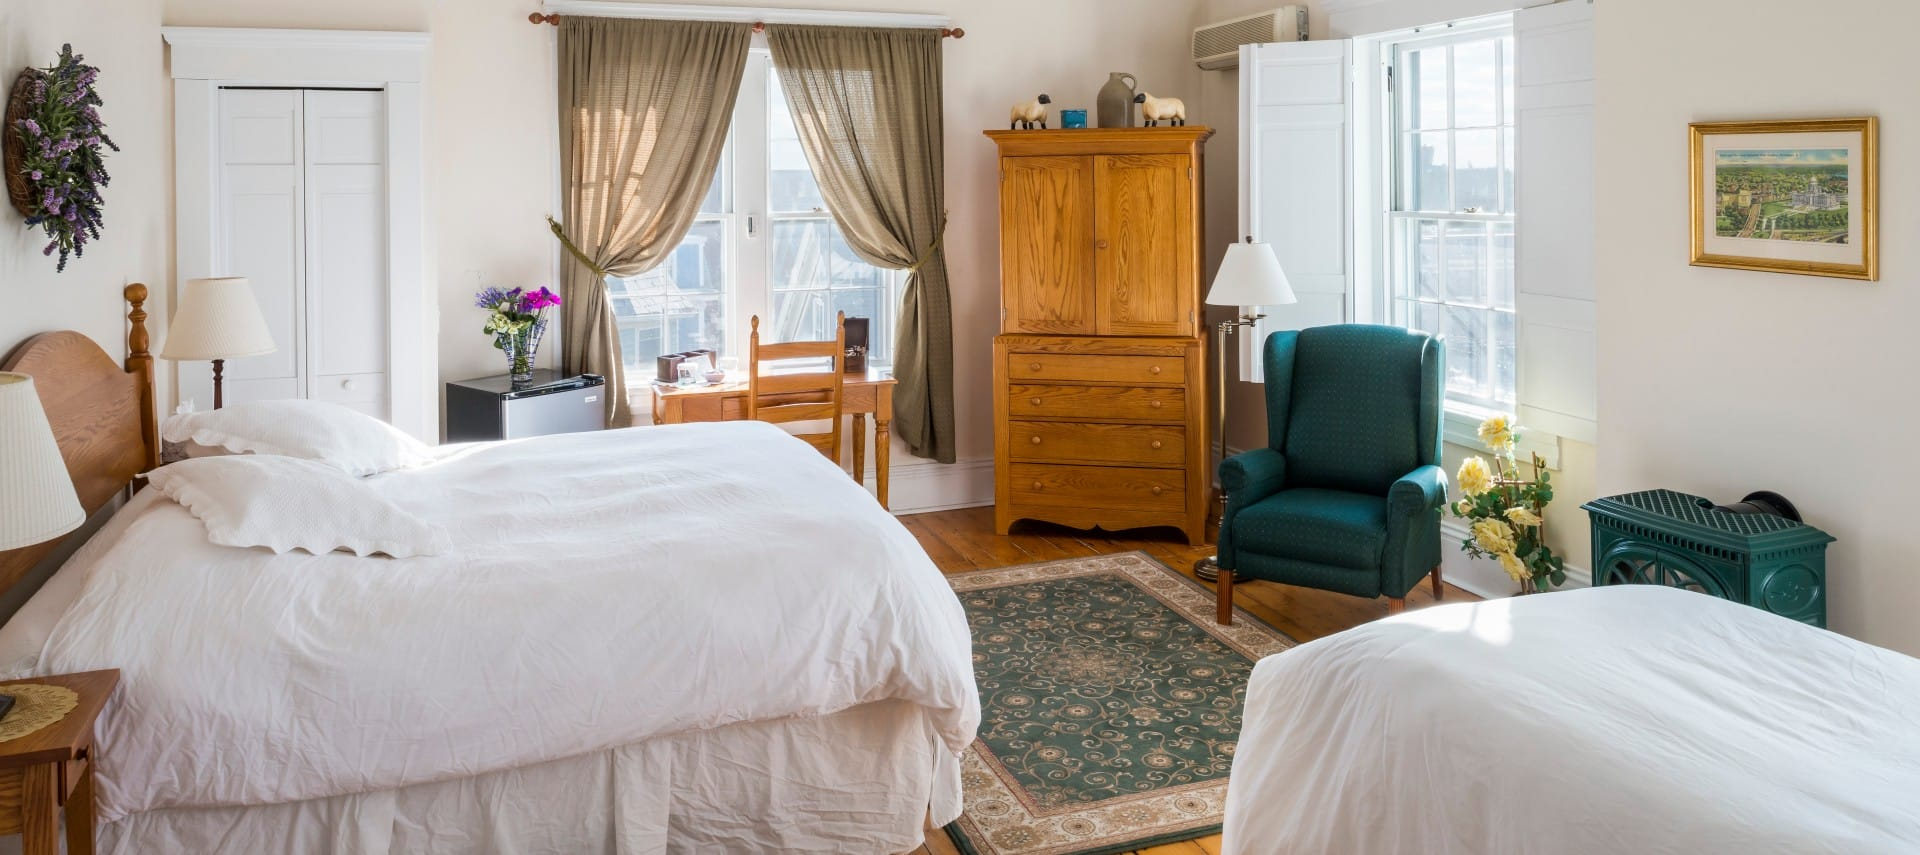 King and twin bed in a room with a wooden desk and armoire, wood stove, and tall windows.